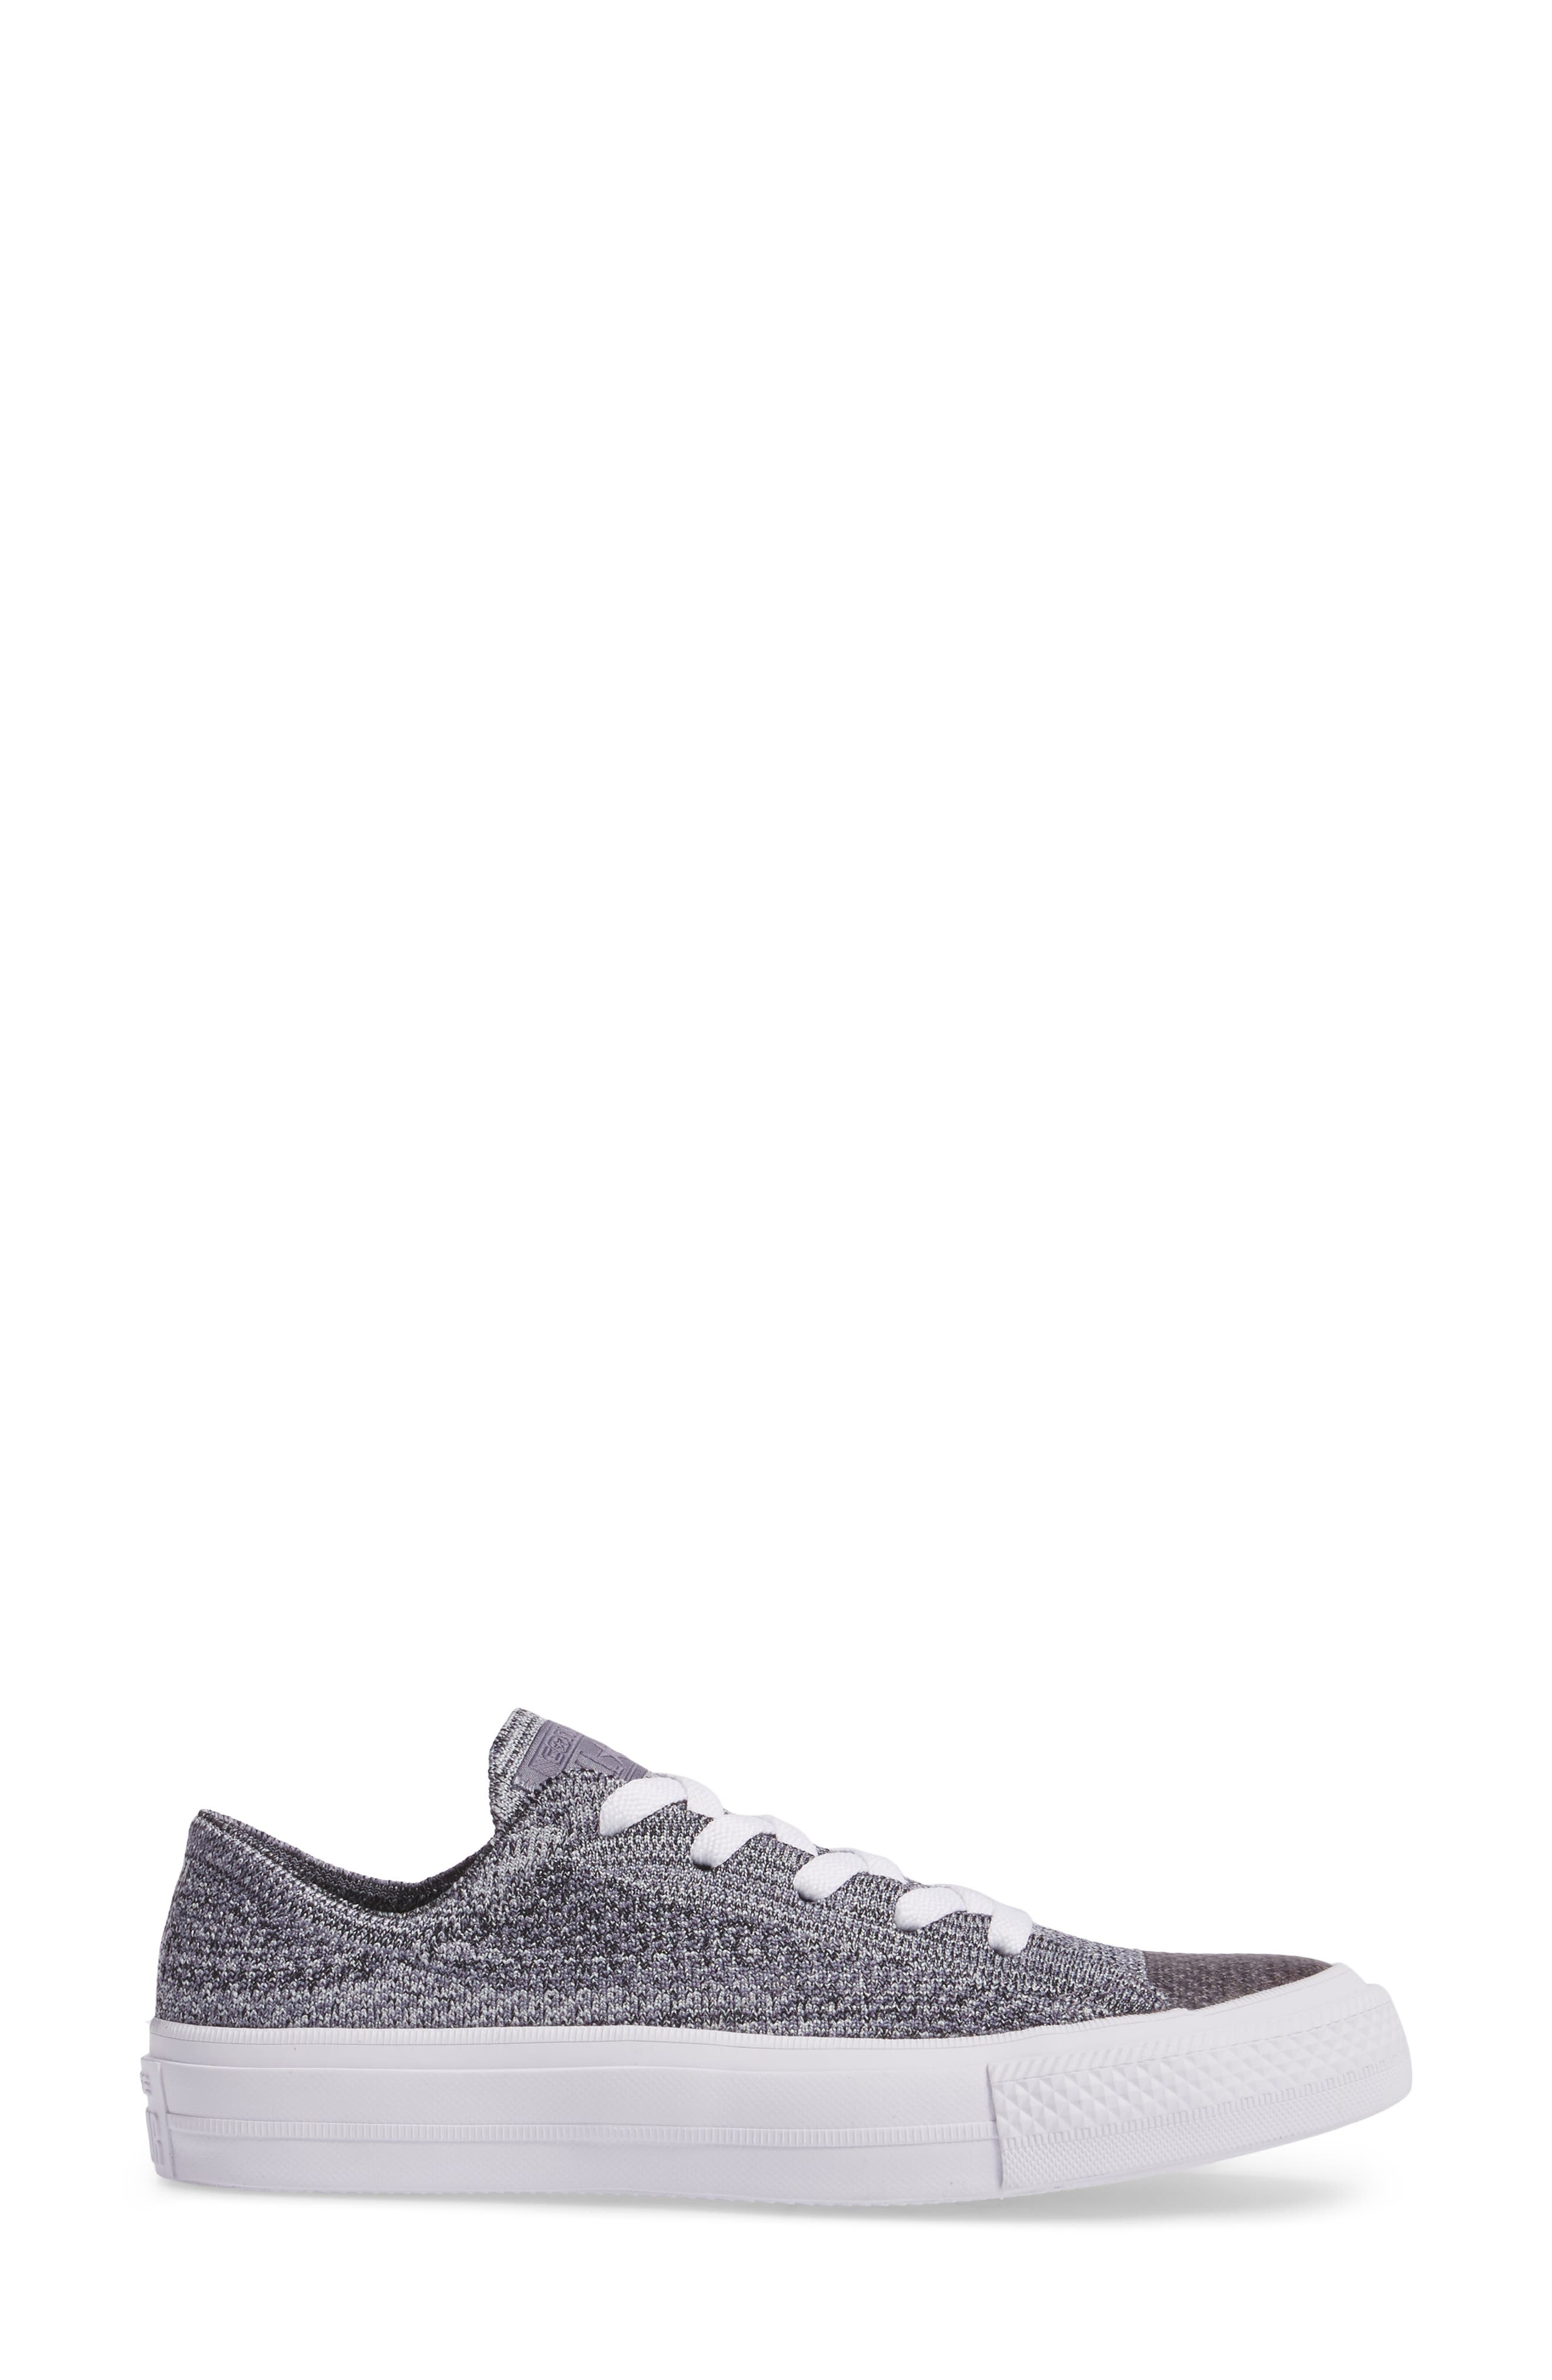 All Star<sup>®</sup> Flyknit Low Sneaker,                             Alternate thumbnail 3, color,                             027